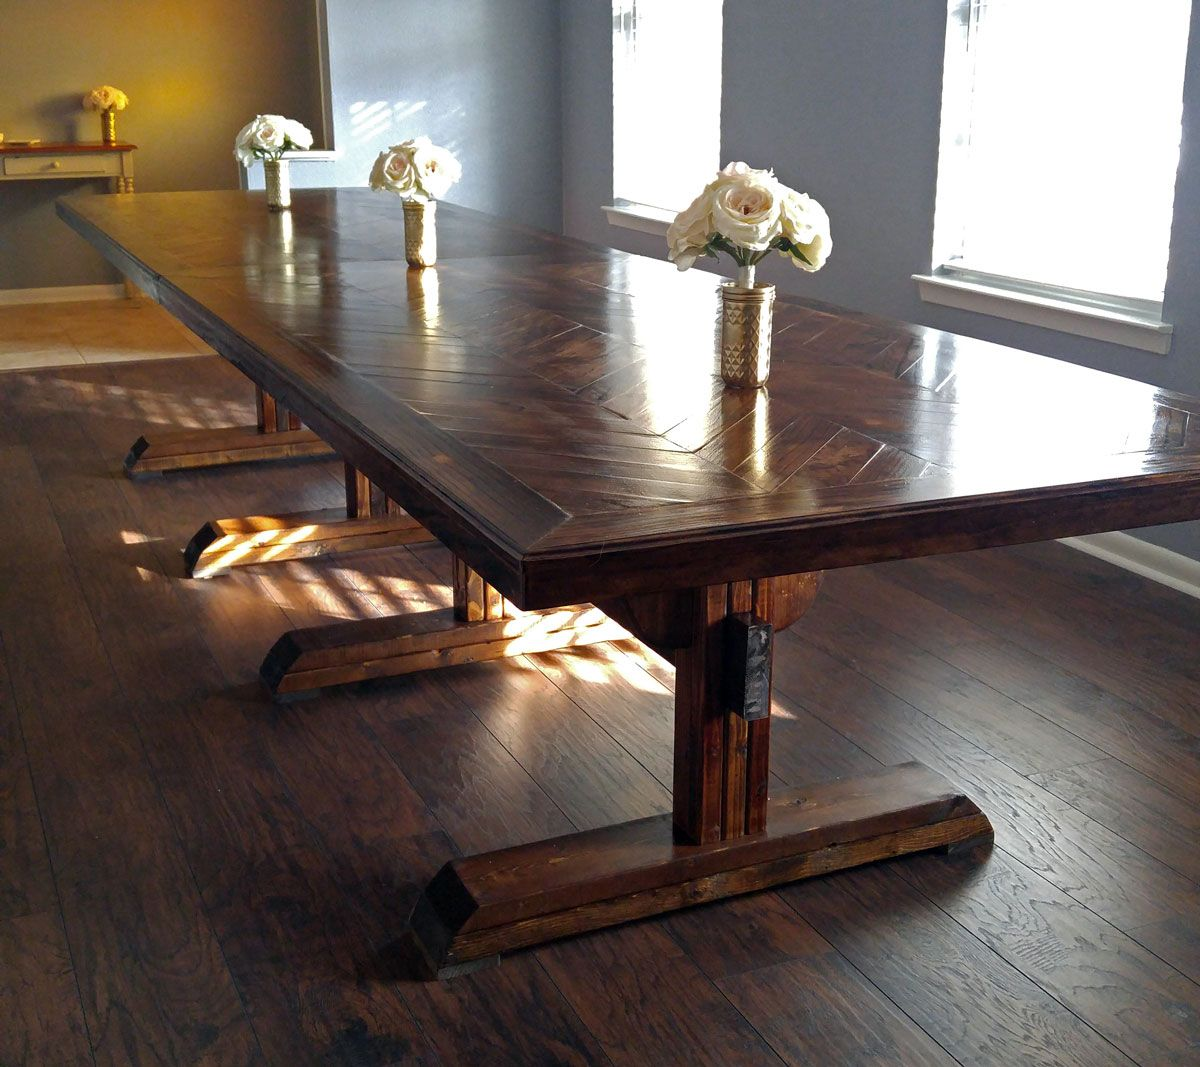 Ana White Dining Room Table: Pedestal Table Herringbone Top - DIY Projects